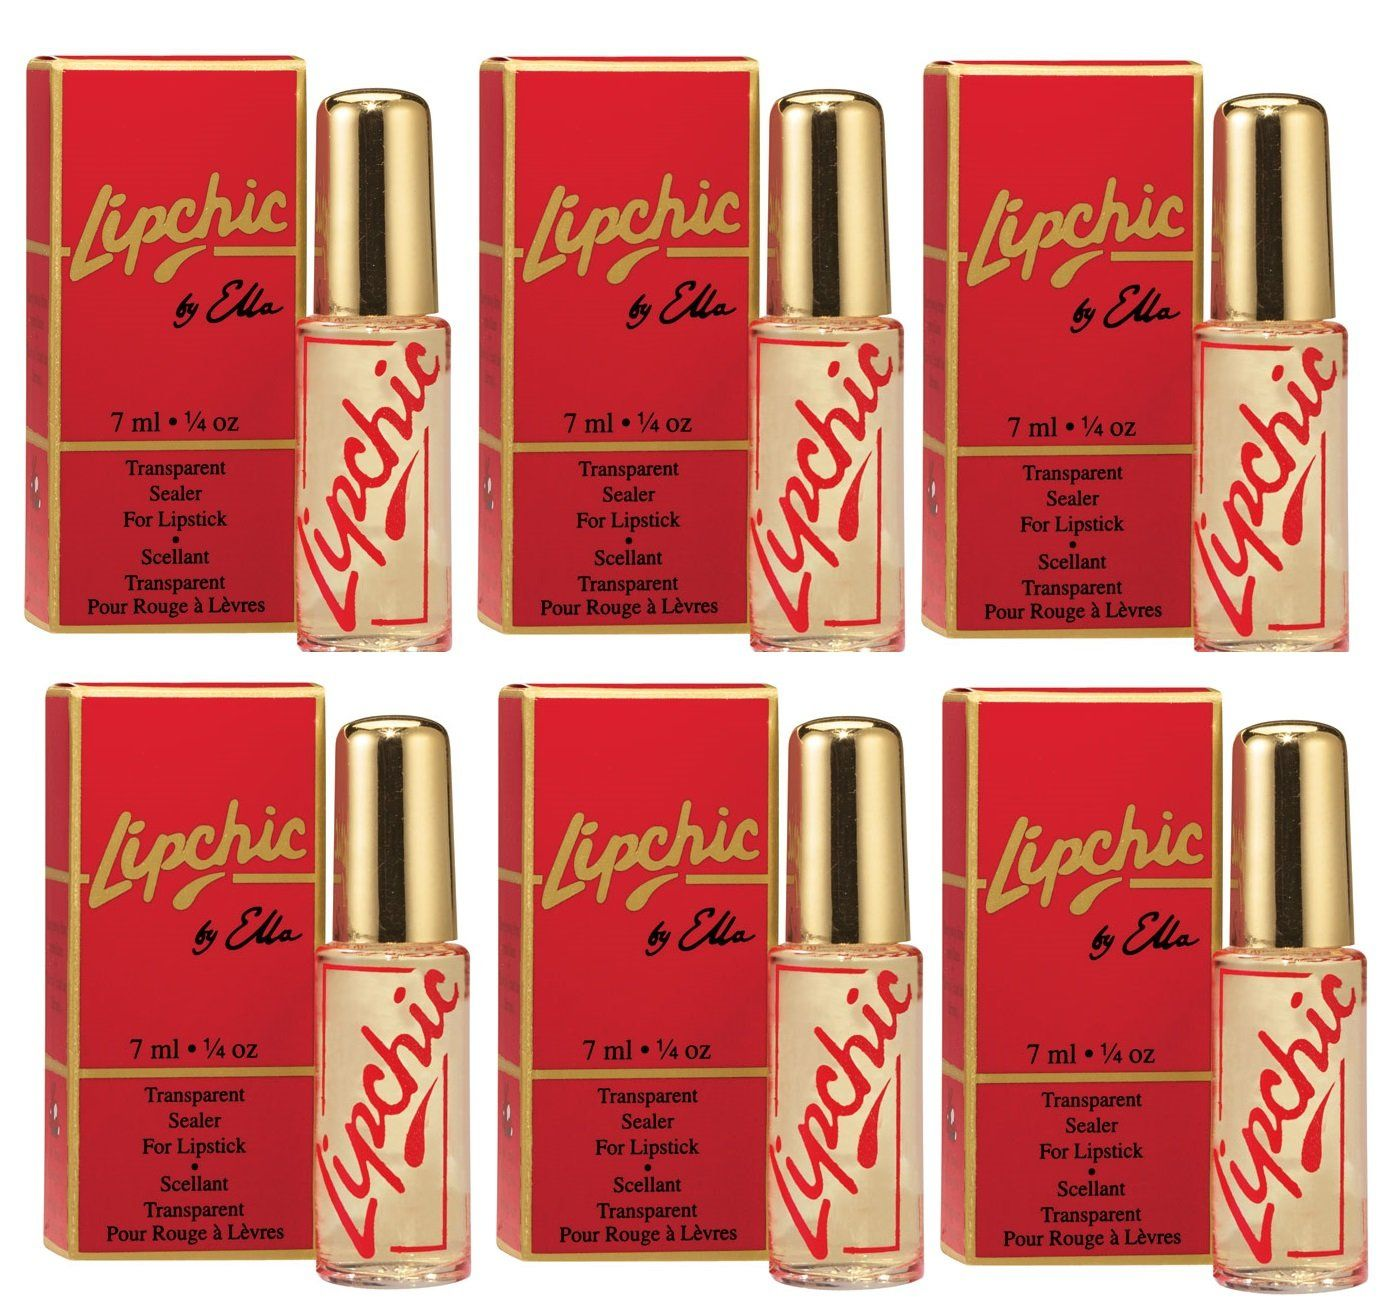 Lipchic Lipstick Sealers 6 Pieces Value Pack 6 Lipchic Lipstick Sealers Lipchic Lipstick Sealer Contains No Ink Dye Lipstick Sealer Lipstick Travel Makeup